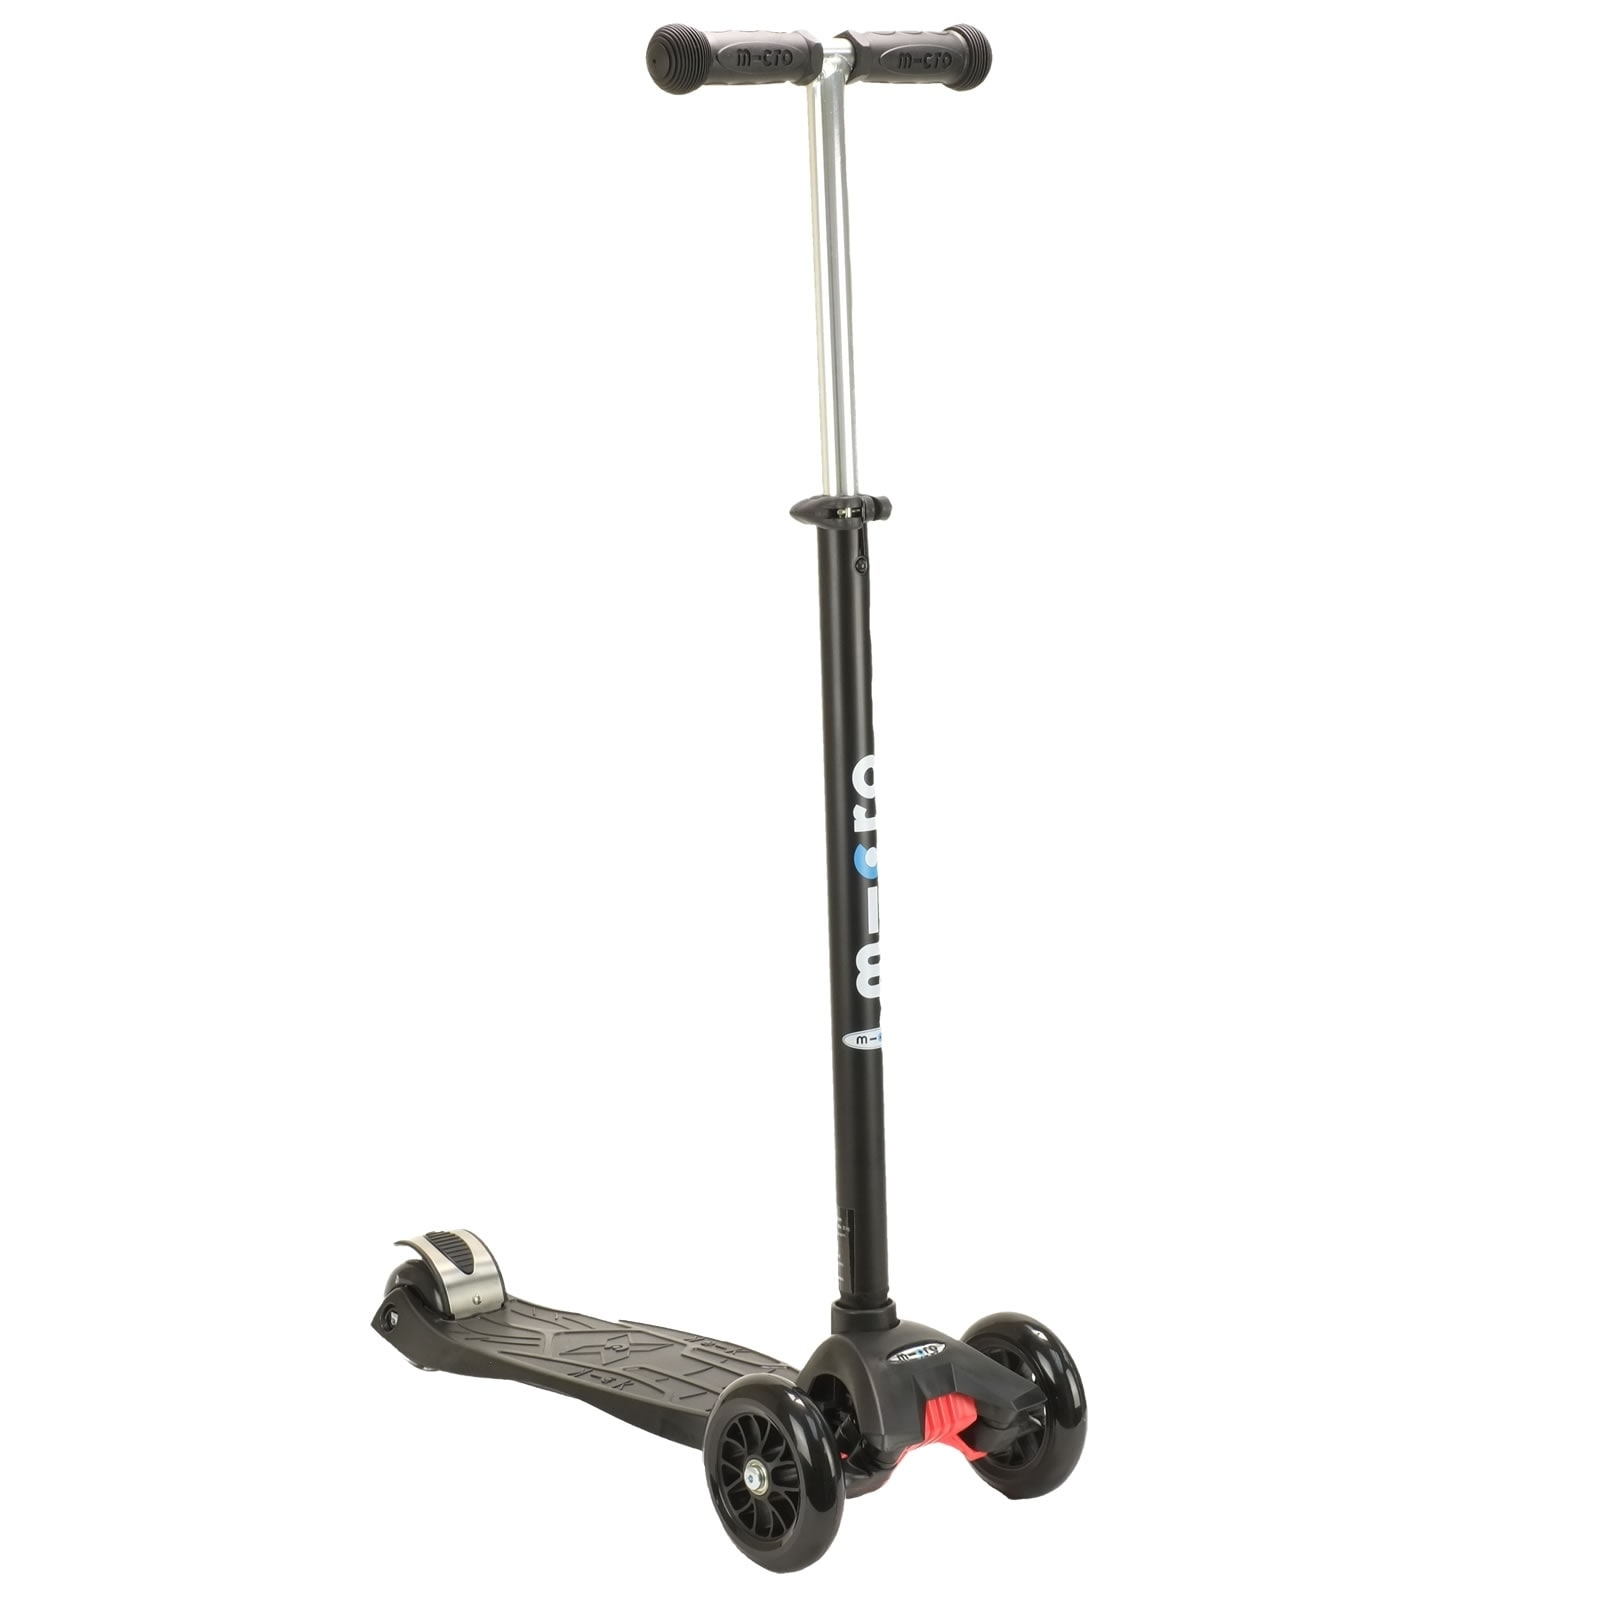 maxi micro t bar scooter black complete scooters. Black Bedroom Furniture Sets. Home Design Ideas